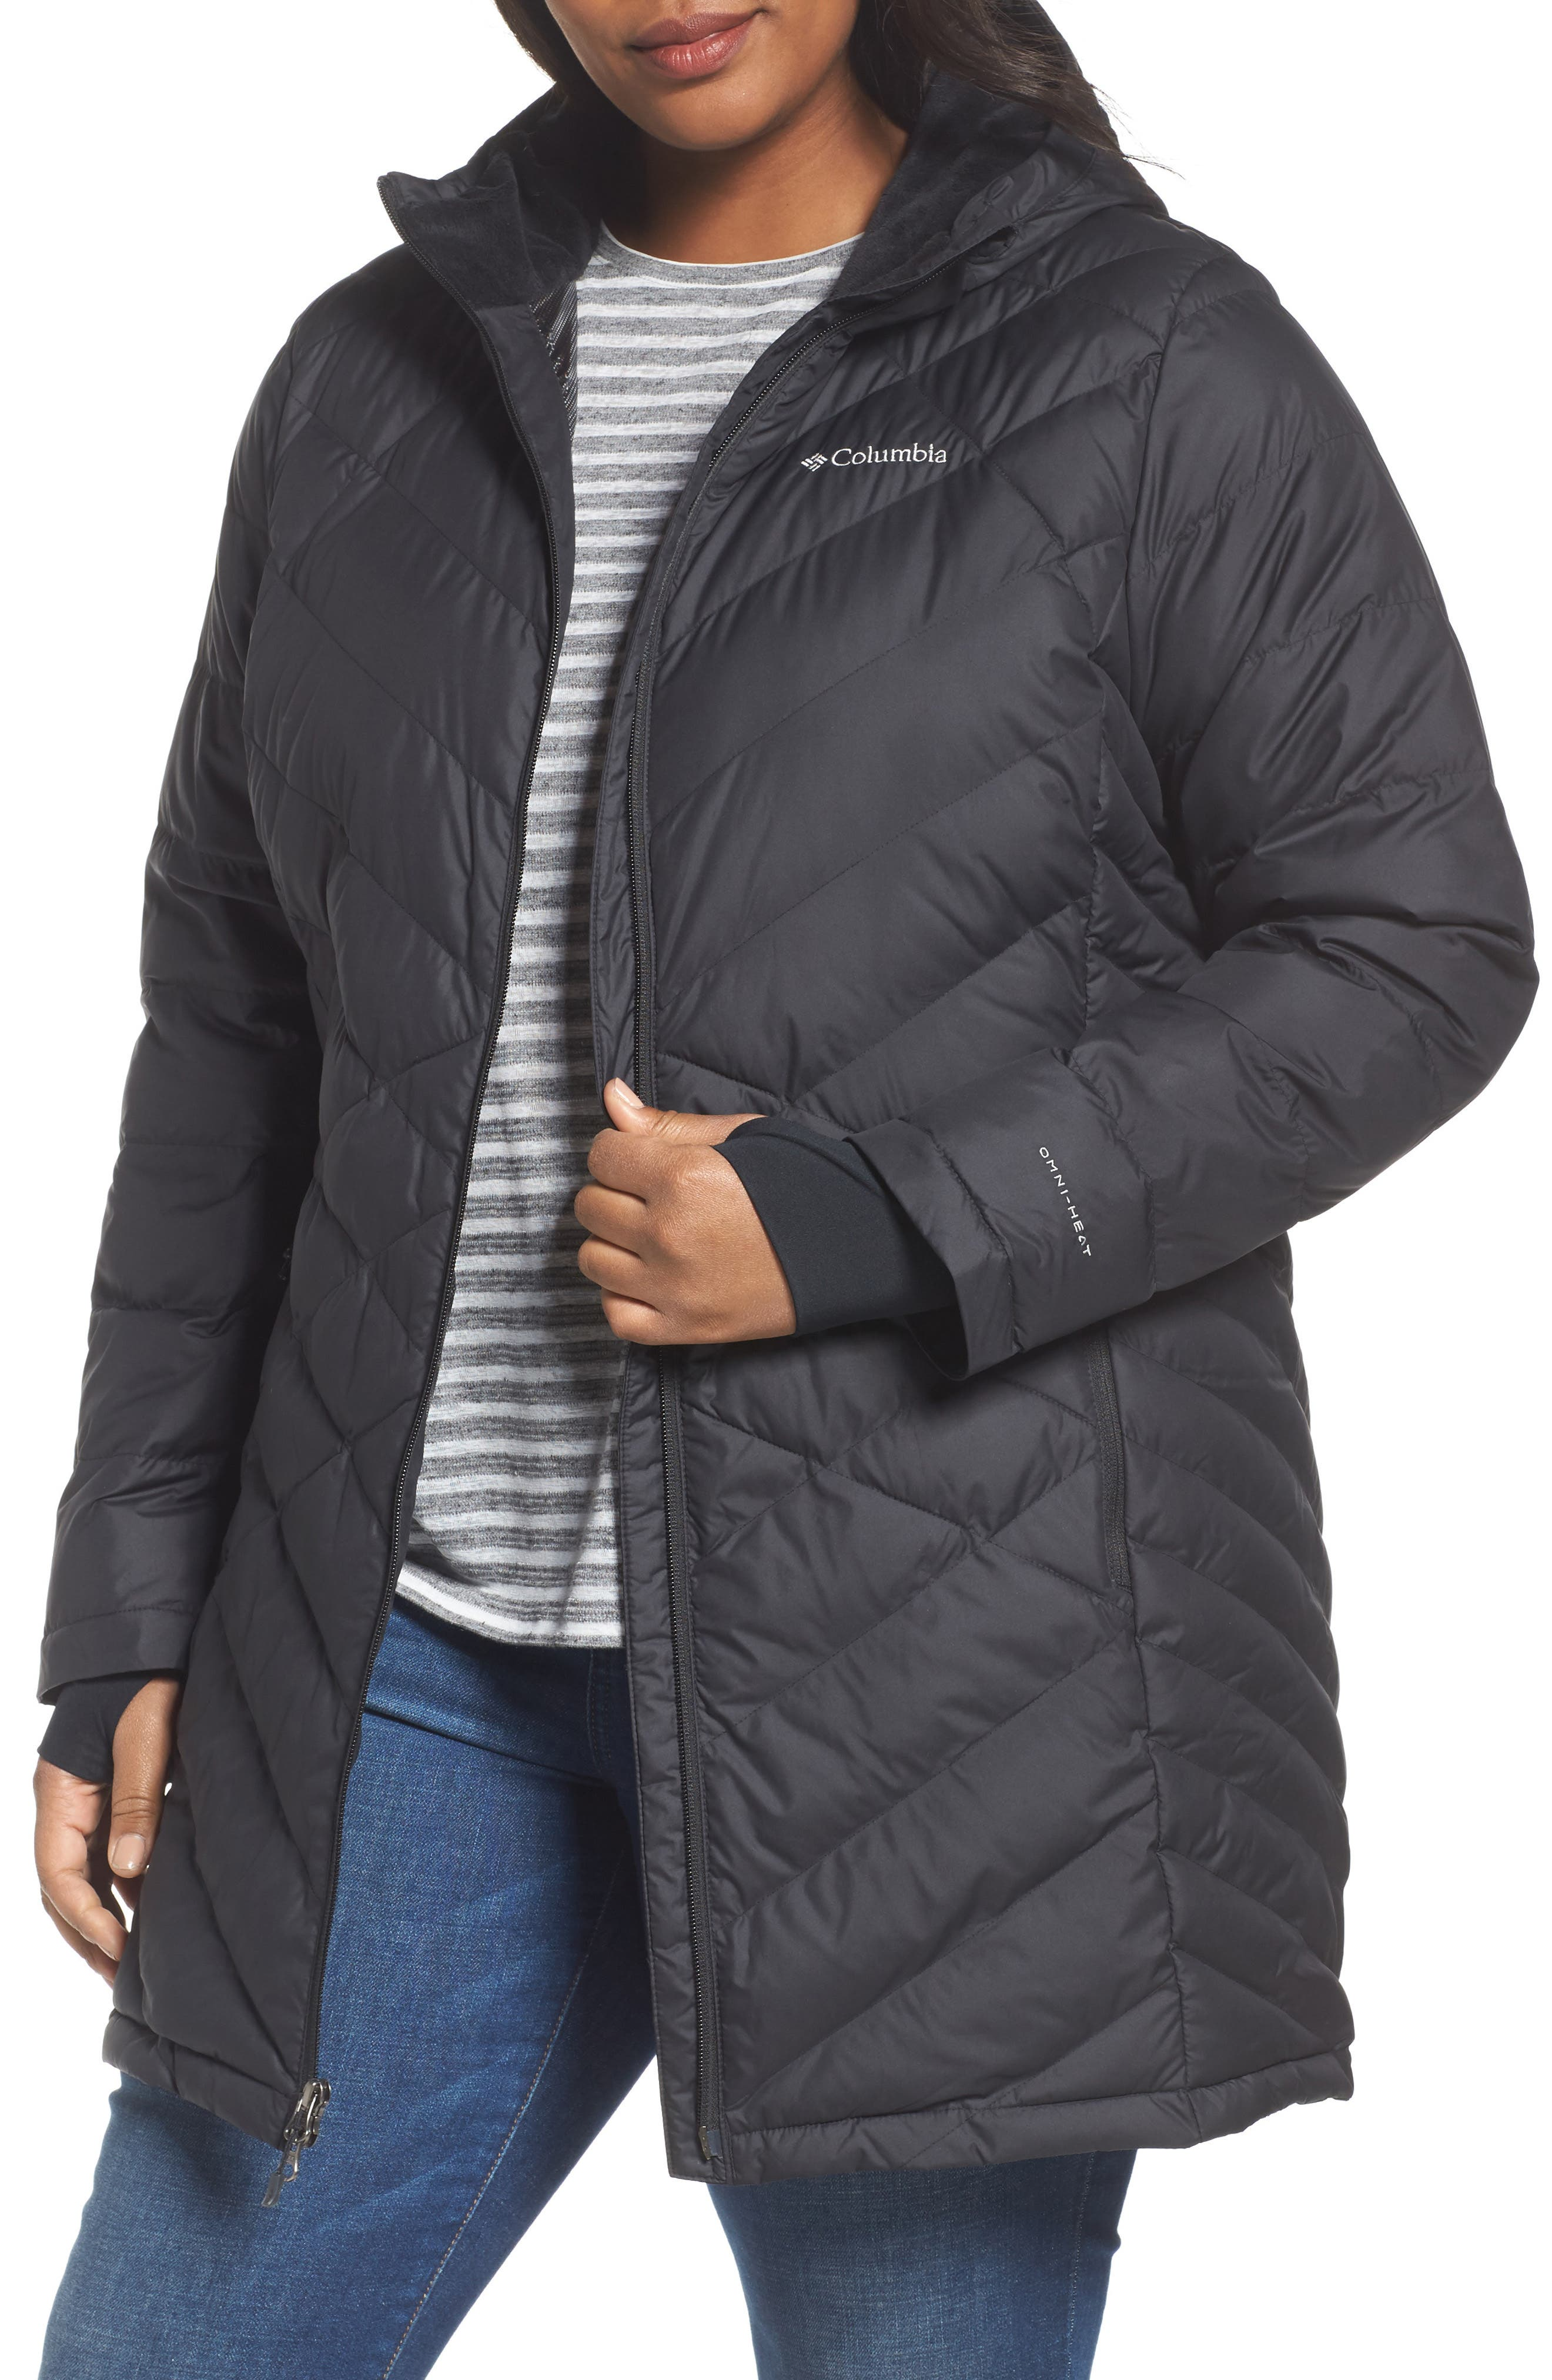 Heavenly Water Resistant Insulated Long Hooded Jacket,                             Main thumbnail 1, color,                             010